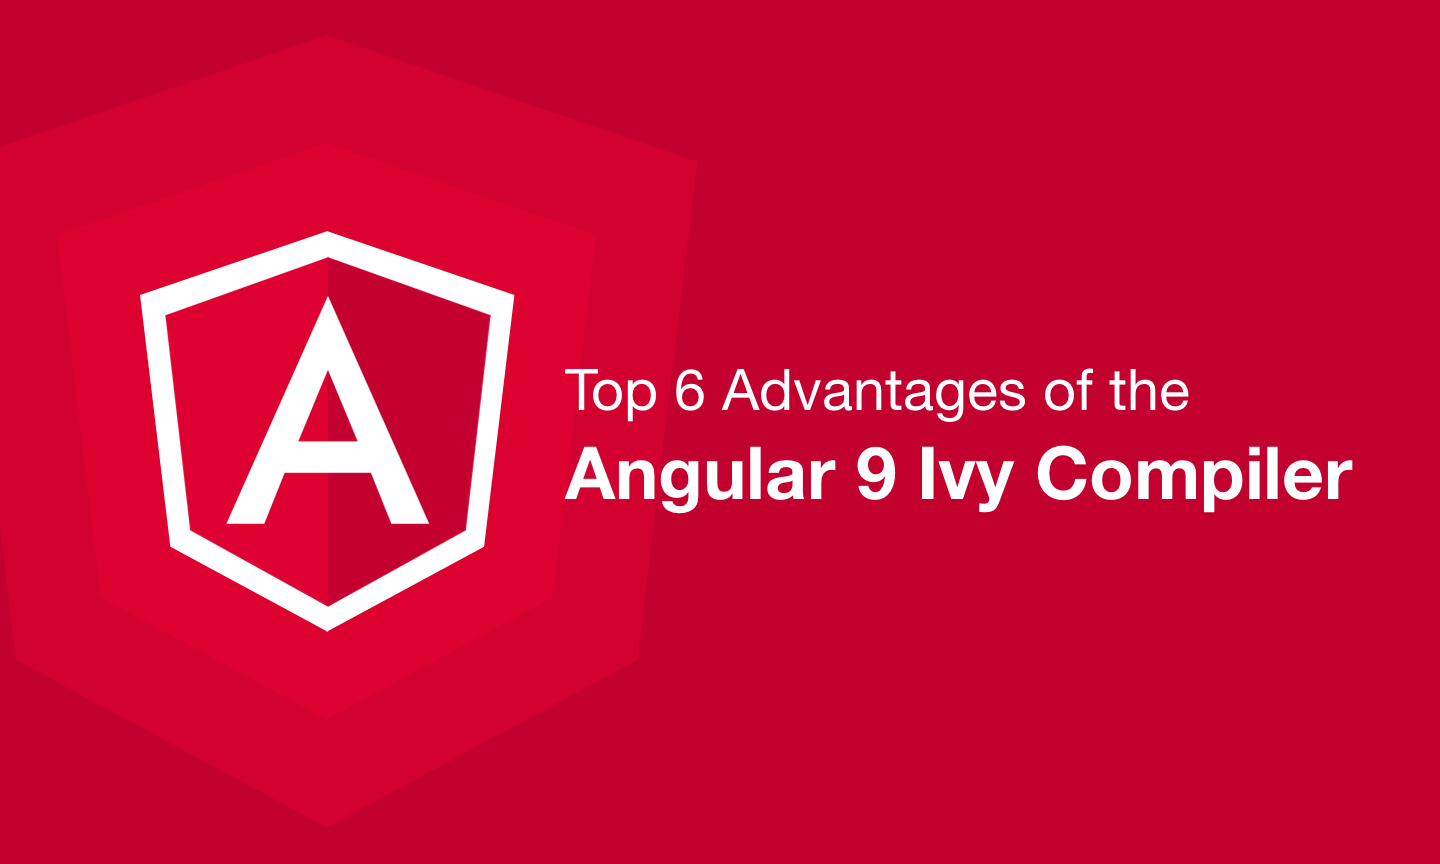 Top 6 Advantages of the Angular 9 Ivy Compiler